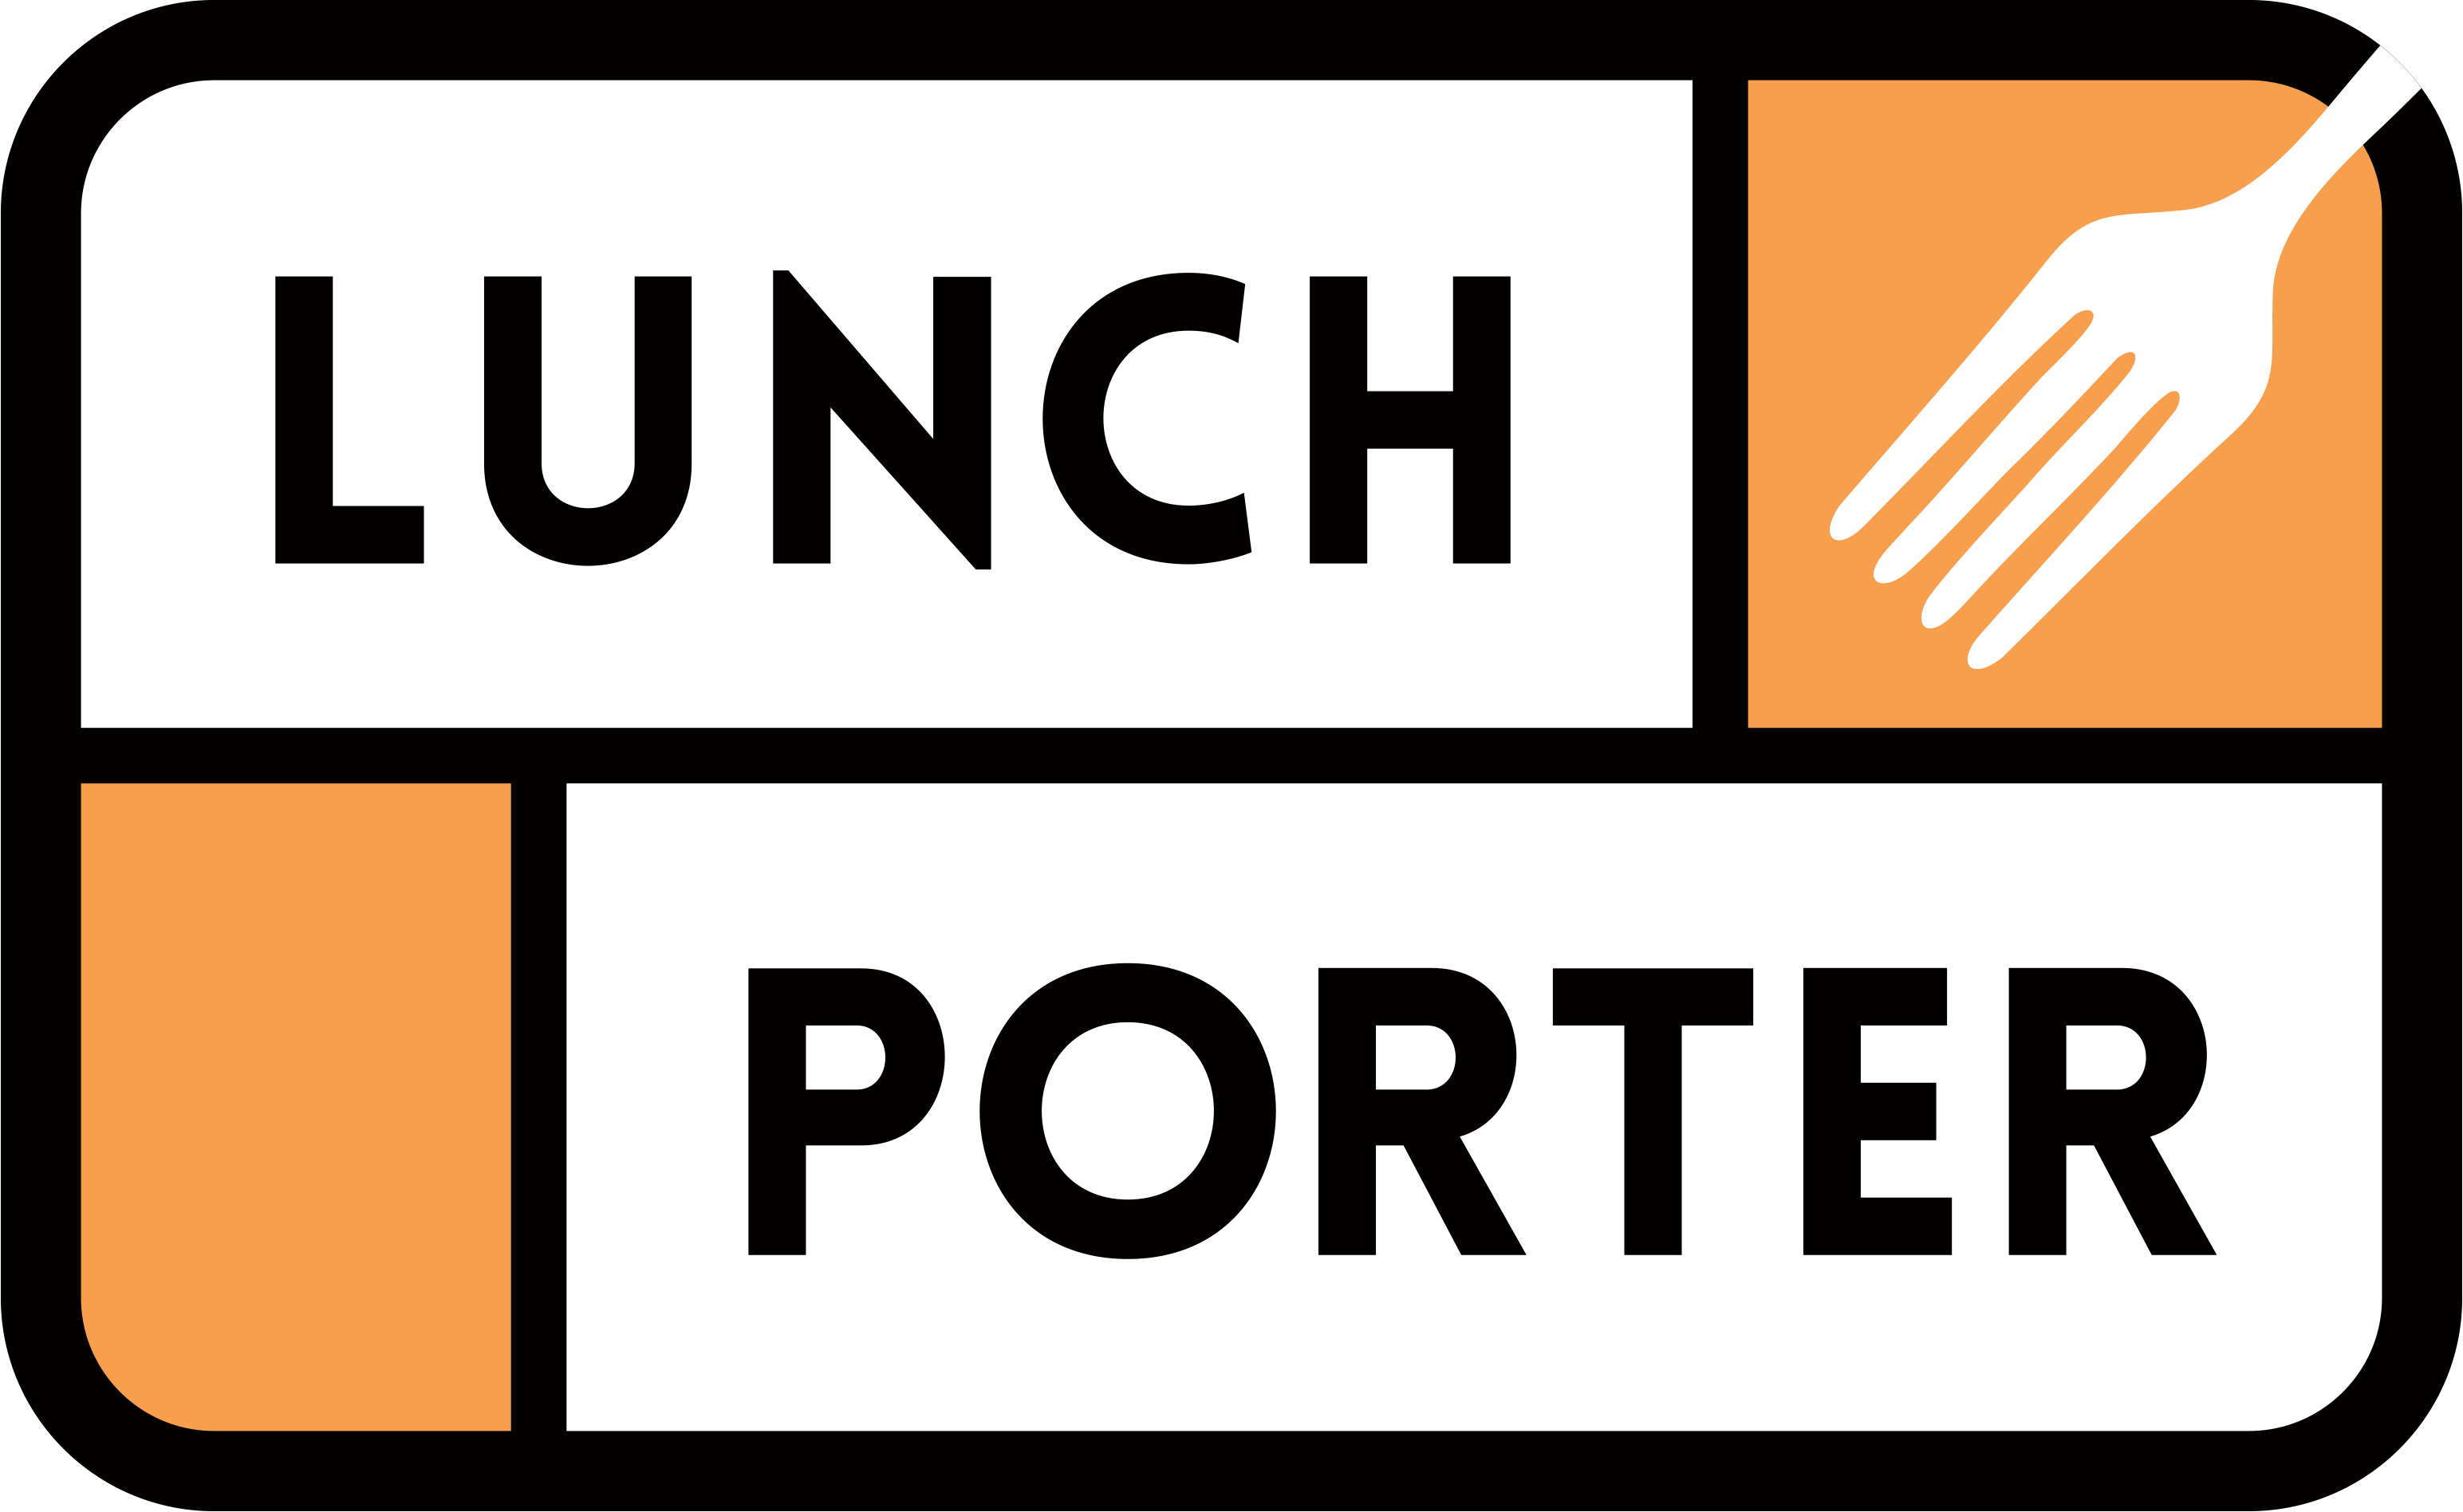 Online Shopping for Lunch Boxes and Bentos - Lunch Porter